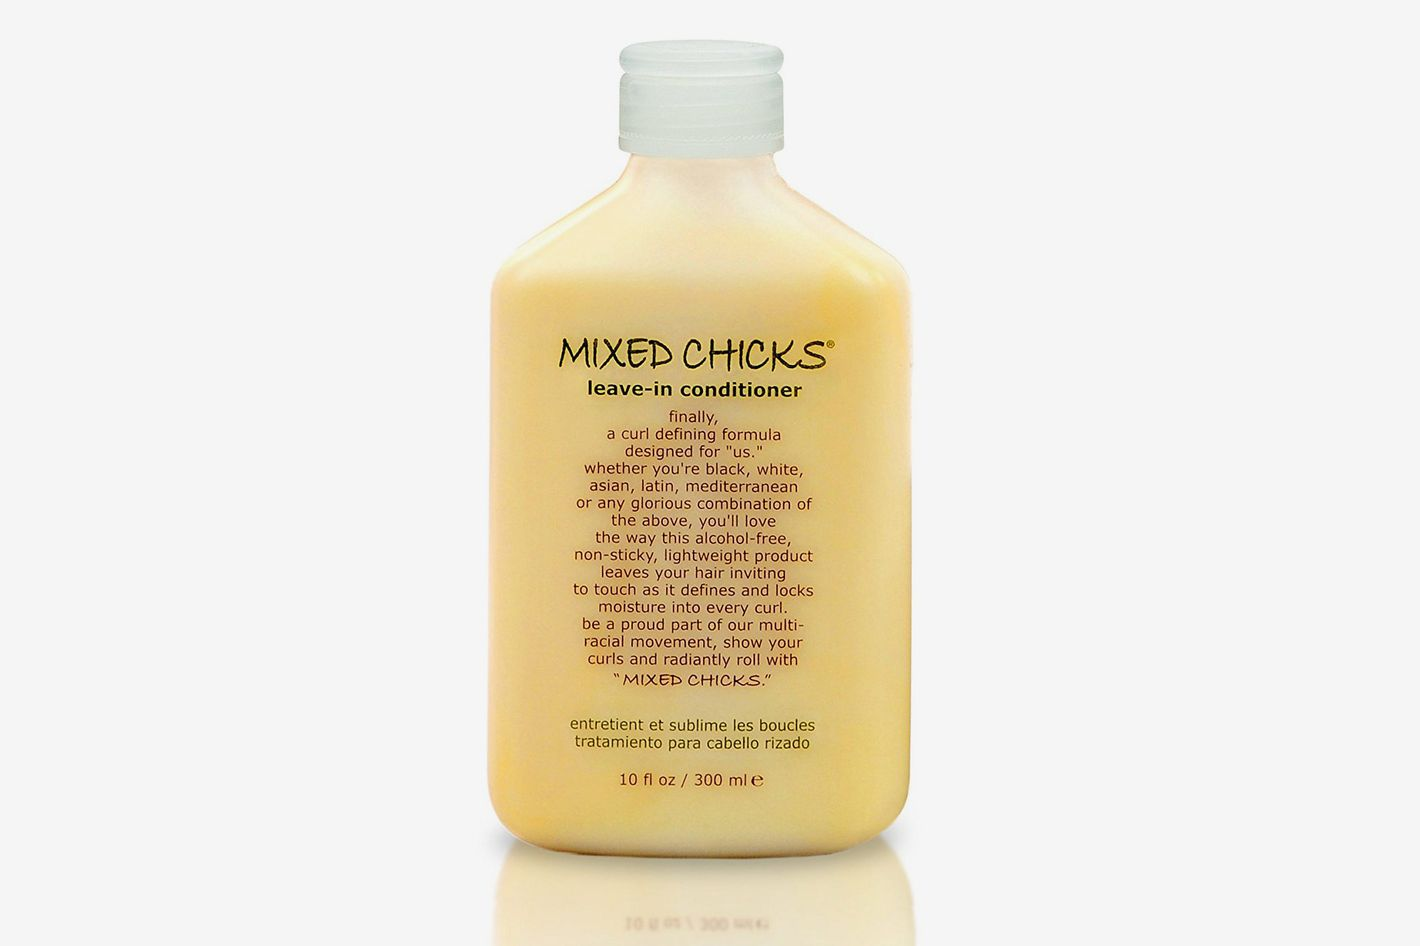 Mixed Chicks Curl Defining & Frizz Eliminating Leave-In Conditioner